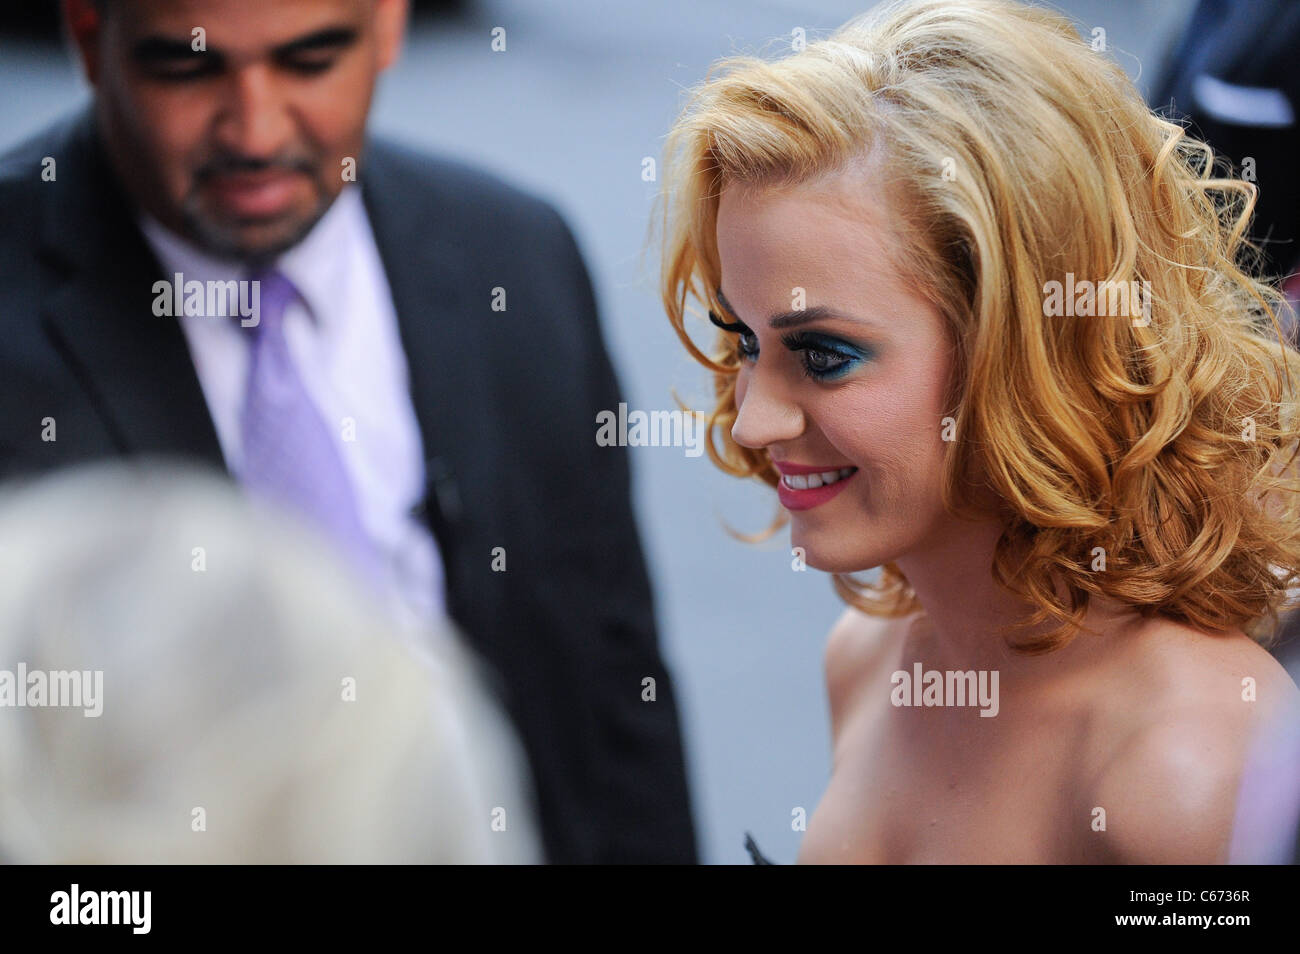 Katy Perry, enters the Ziegfeld Theatre at the premiere of THE SMURFS, out and about for CELEBRITY CANDIDS - SUN, - Stock Image